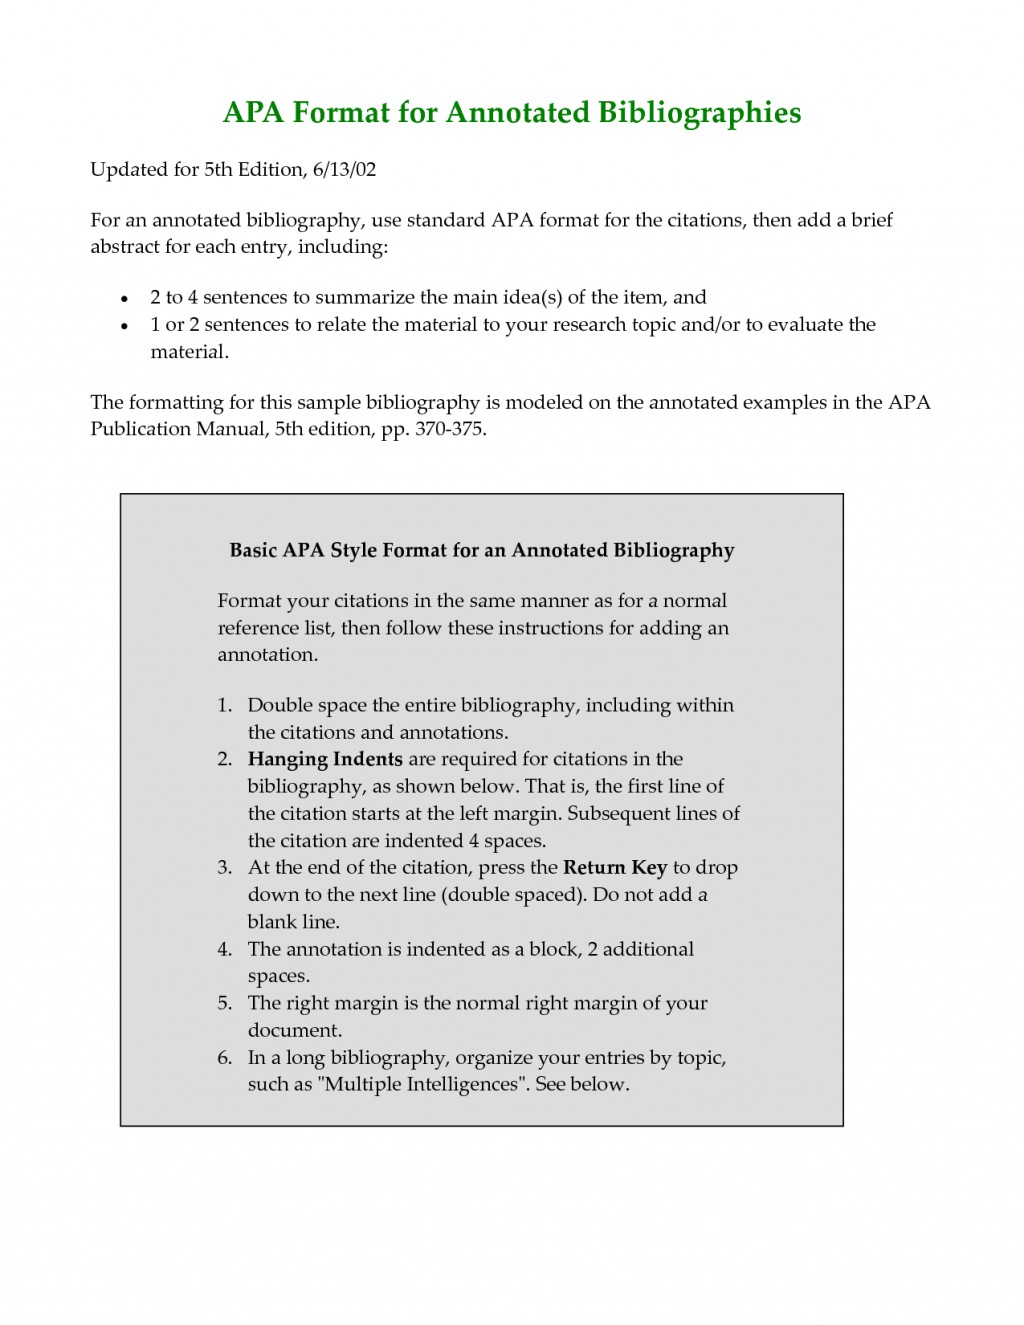 003 Annotated Bibliography Research Paper Topics Singular Large